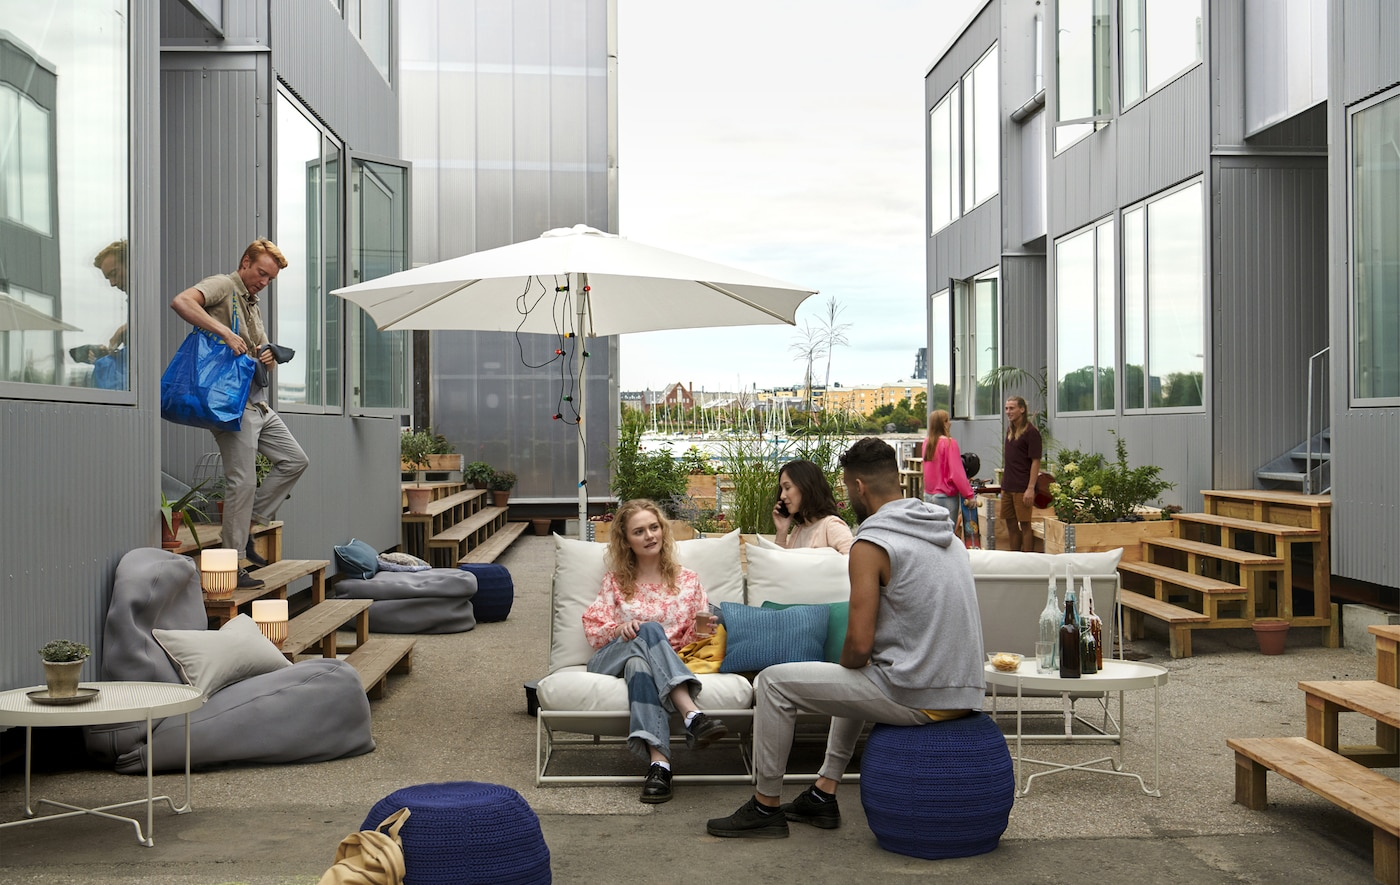 People sitting on sofas and floor cushions with an umbrella and side tables in an outdoor area between shipping container homes.